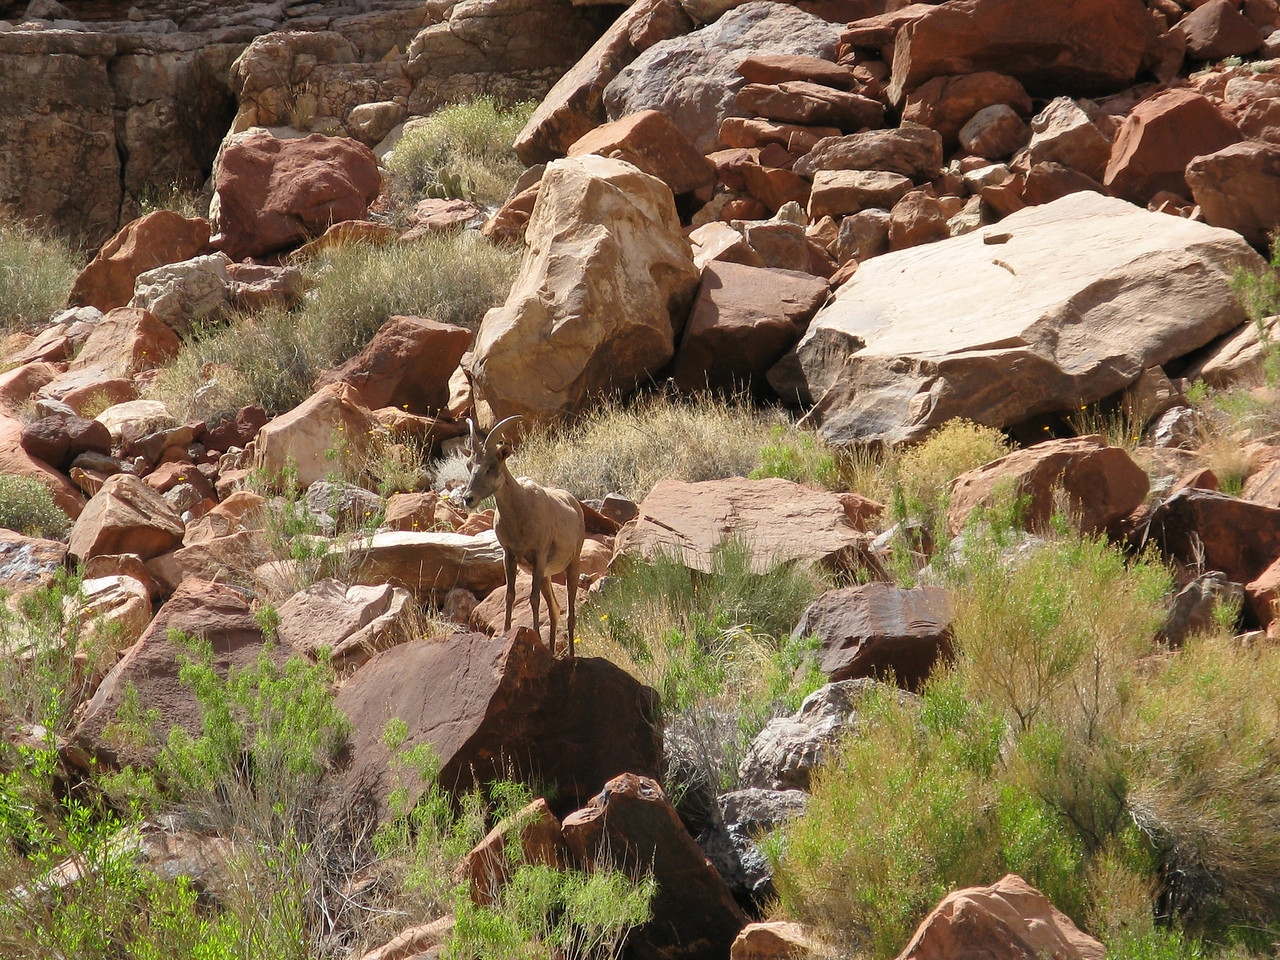 Another Desert Bighorn posing on a rock on the shore.